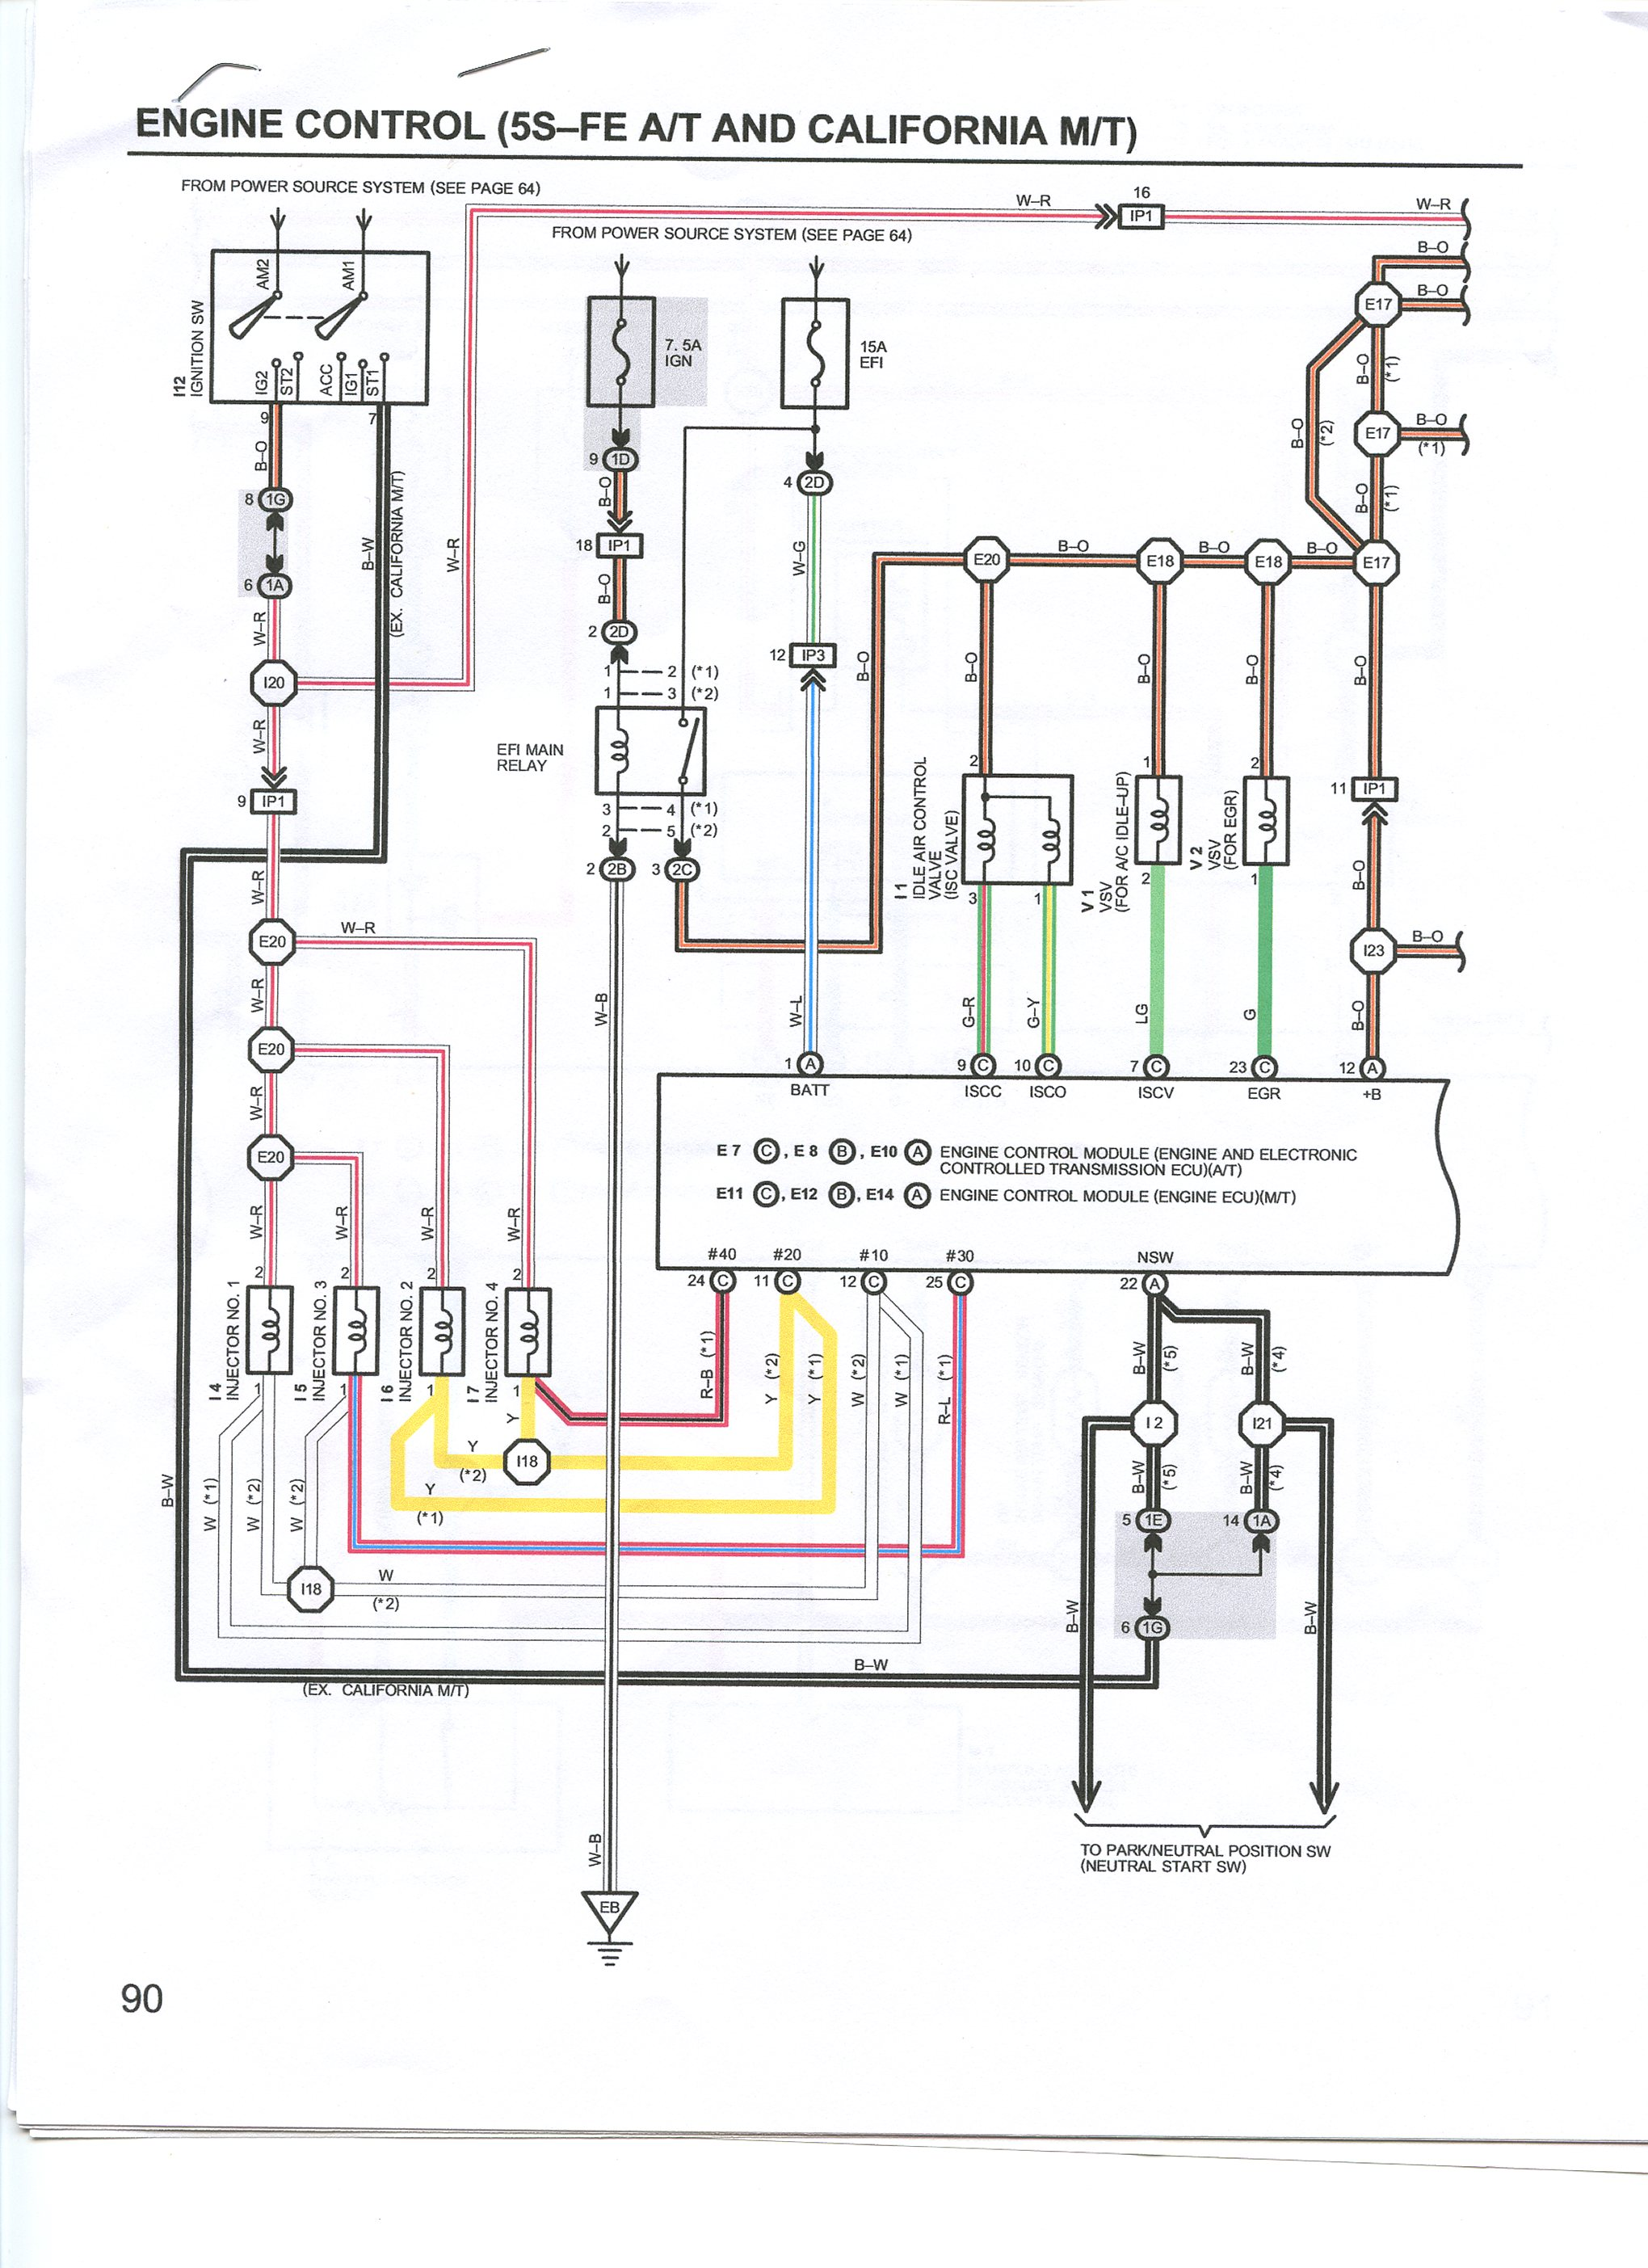 1987 Toyota 22re Fuel System Diagrams Free Download Wiring Diagrams